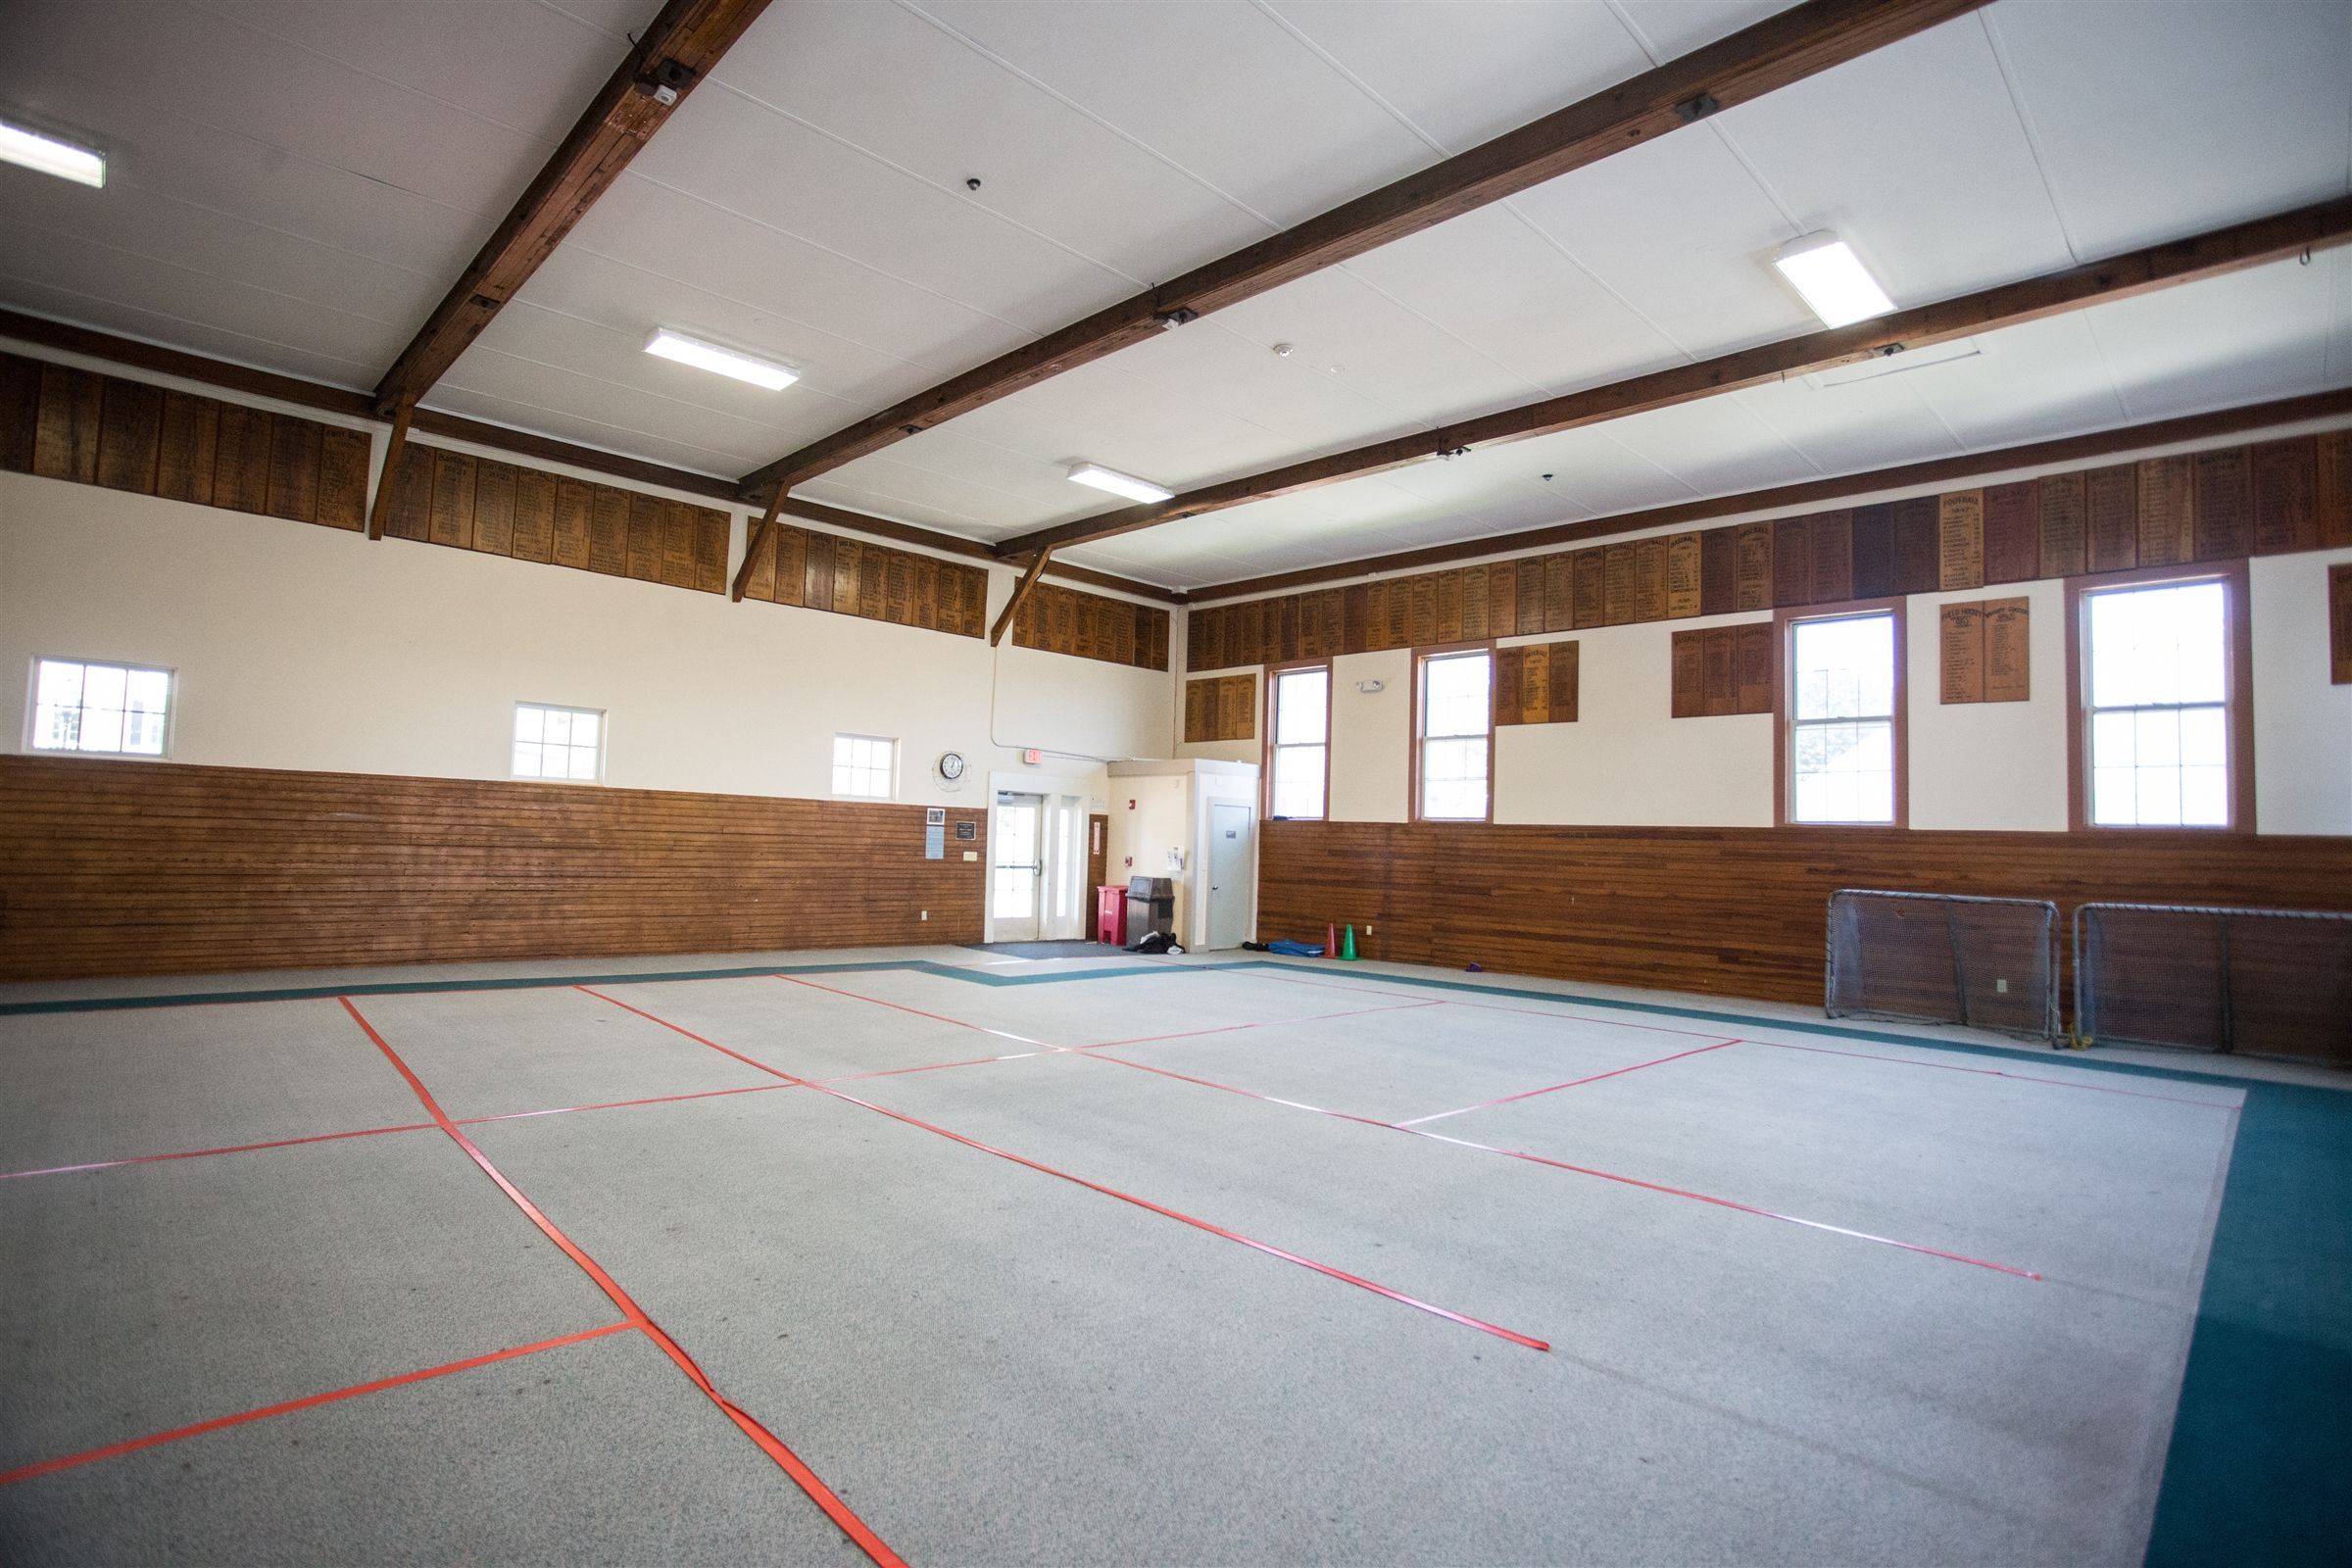 The 2,420 square foot indoor space at Upjohn is a multi-purpose room with carpeted floors. Rentals in this space have included everything from child care groups to martial arts.